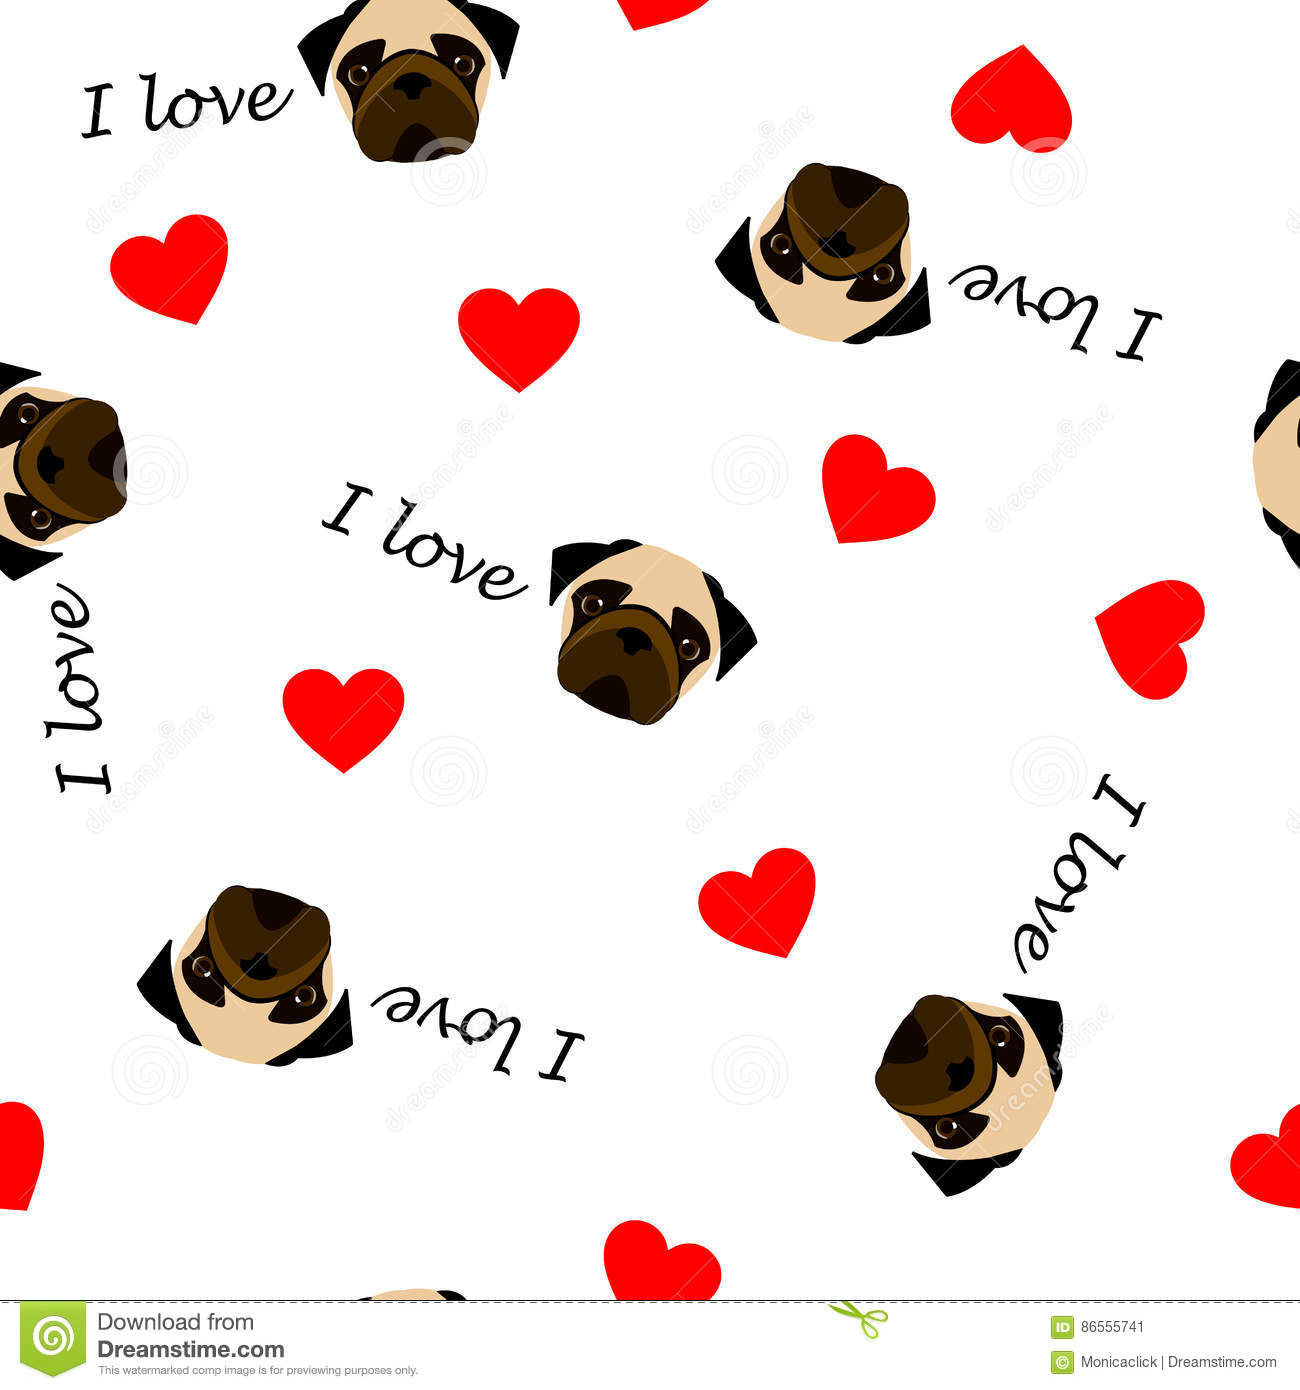 Cute seamless pattern with pug dog, text I love and red heart, transparent background